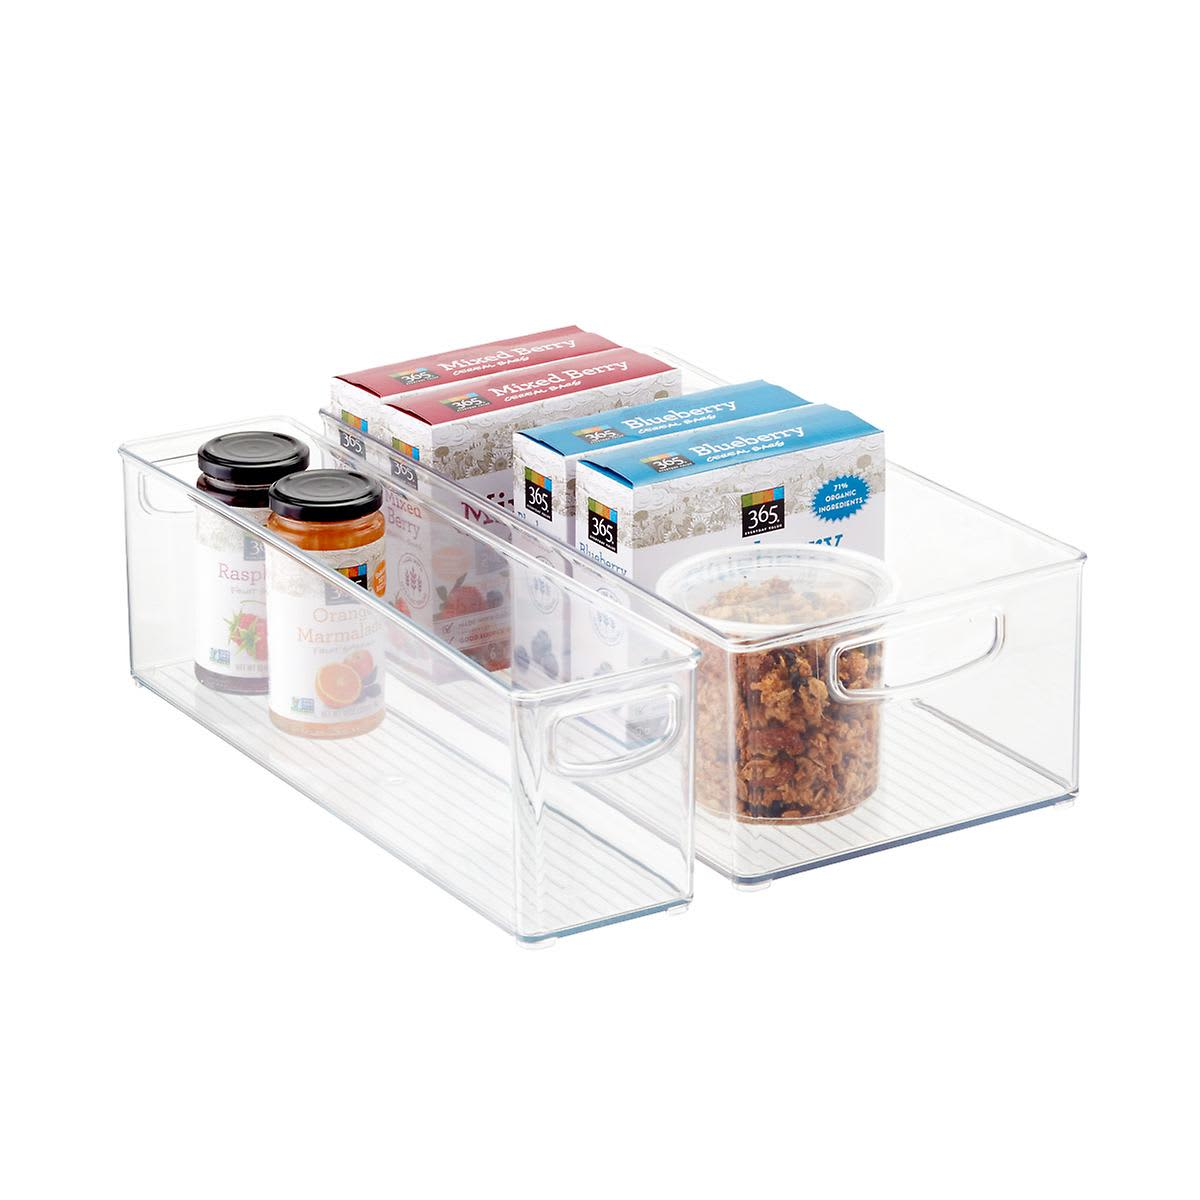 Astounding The Container Store Best Products Kitchn Best Image Libraries Thycampuscom